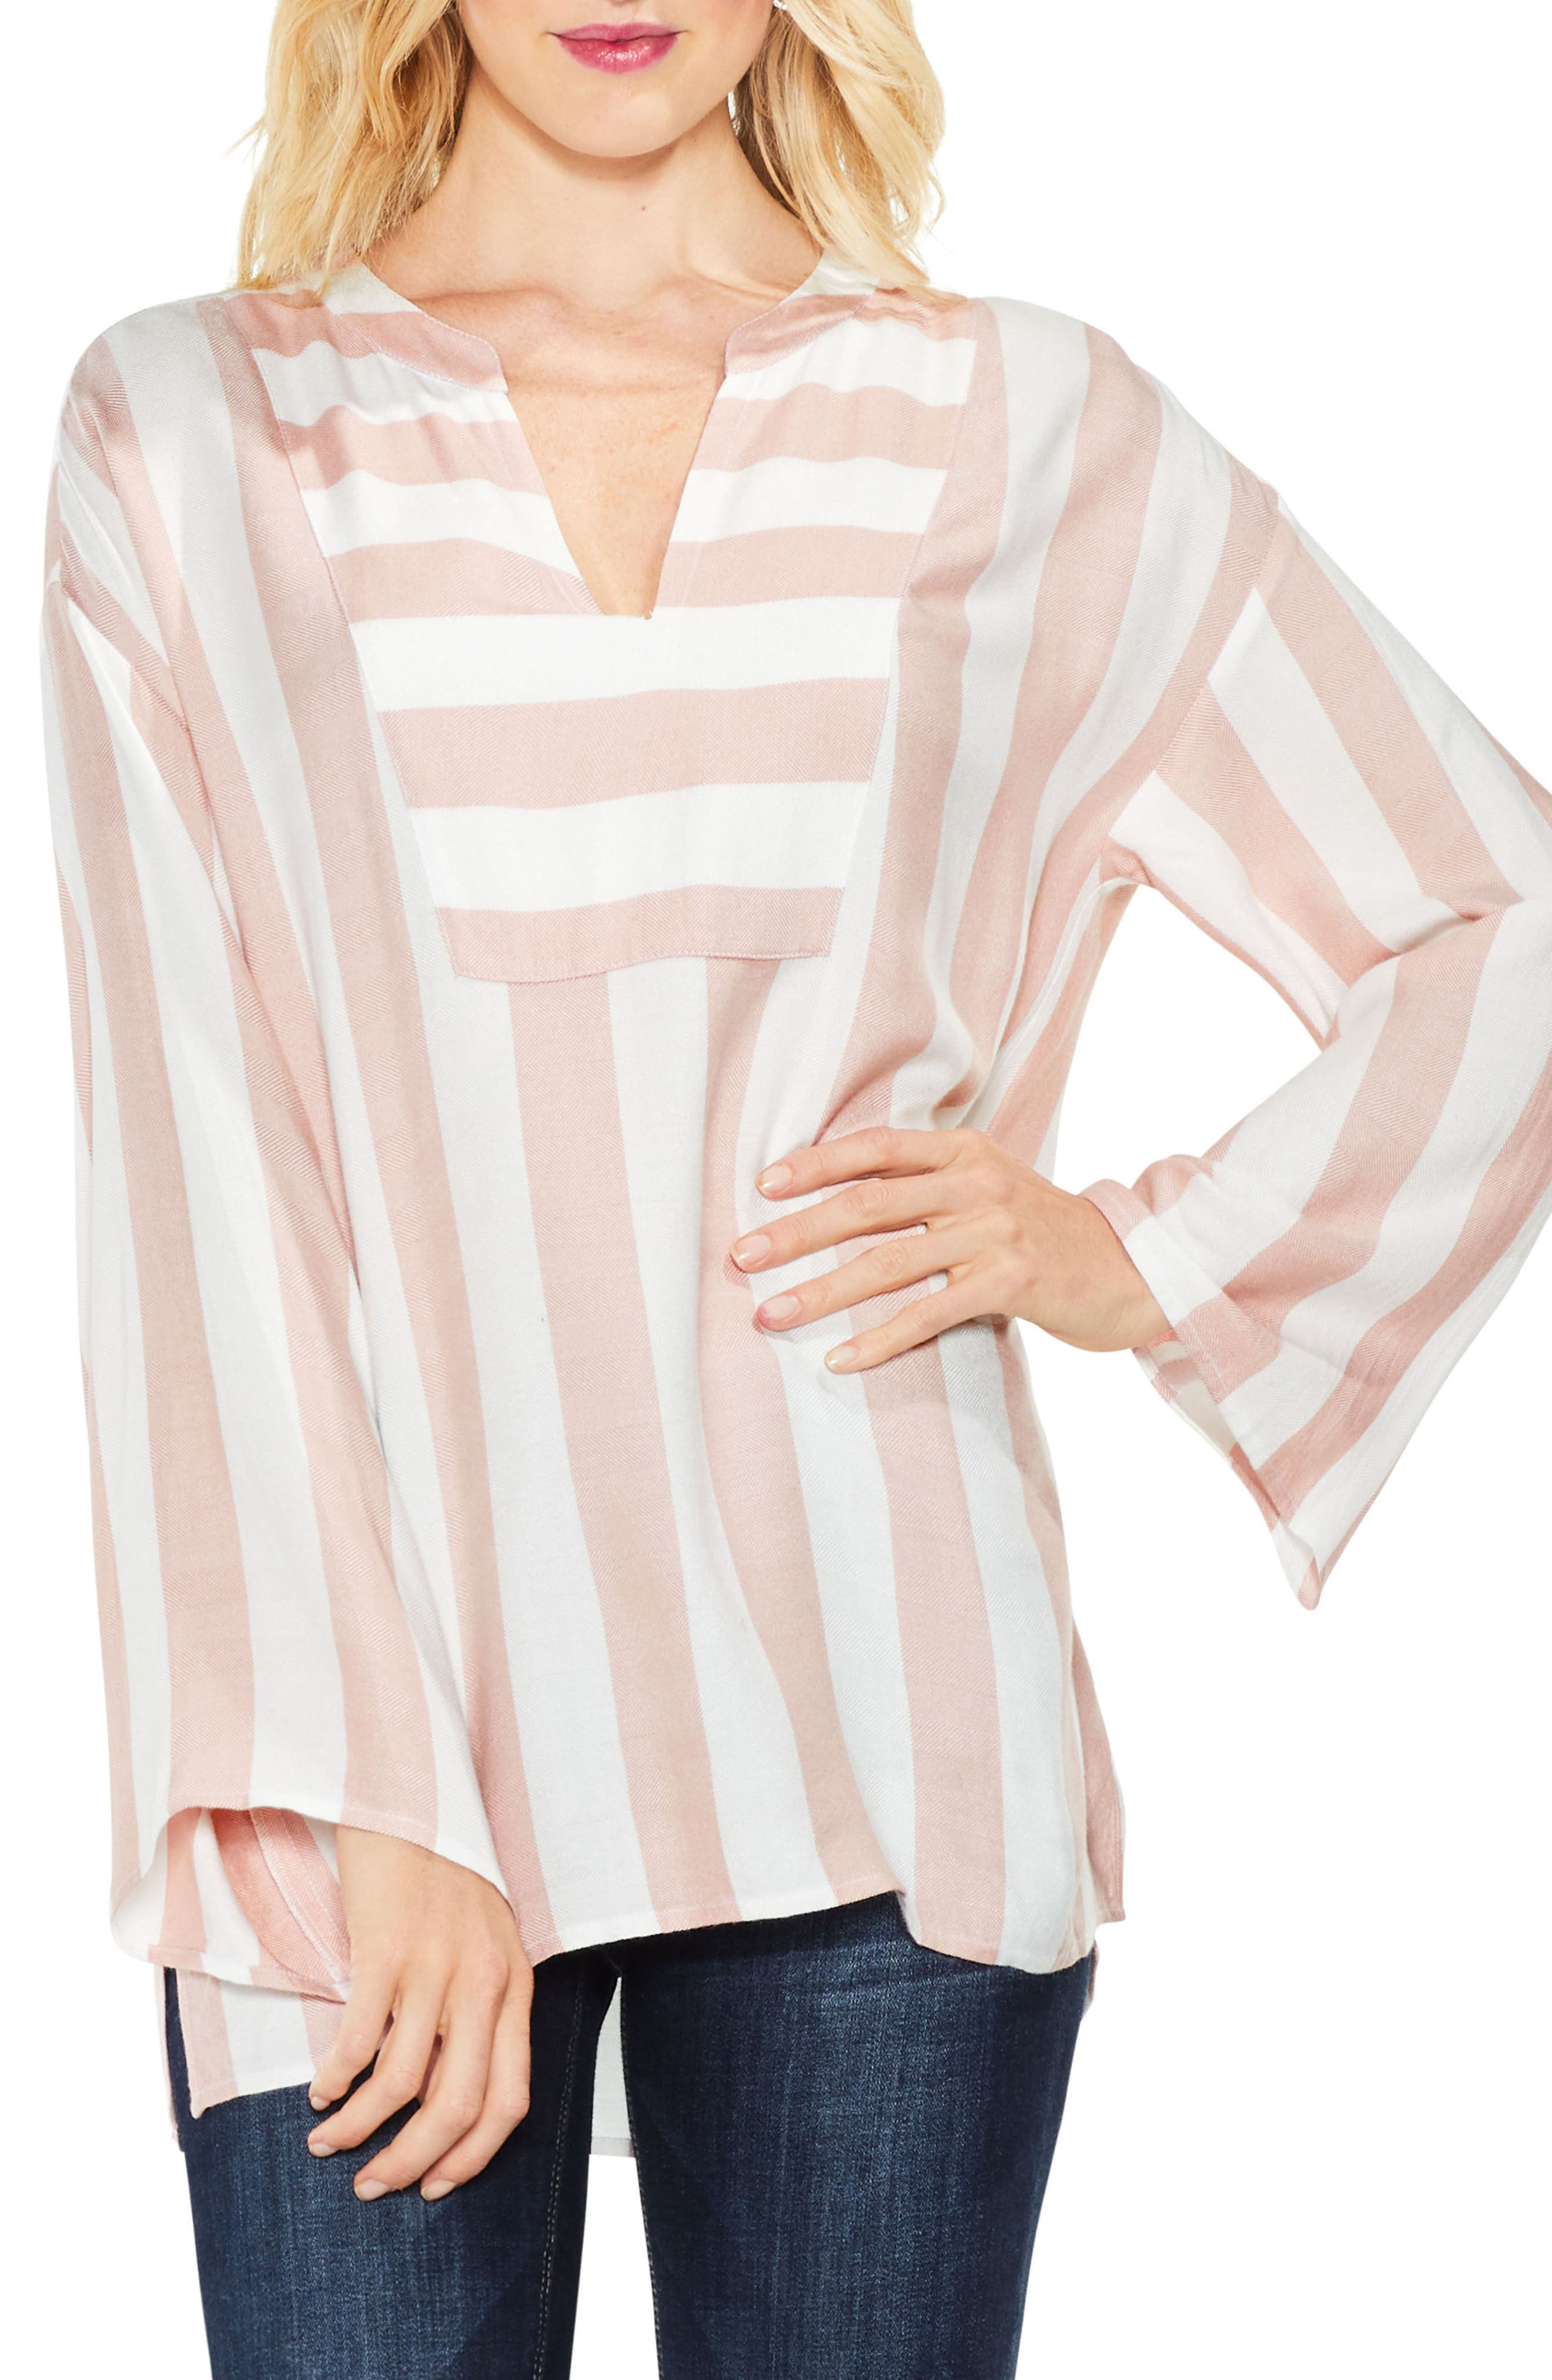 Main Image - Two by Vince Camuto Bell Sleeve Top